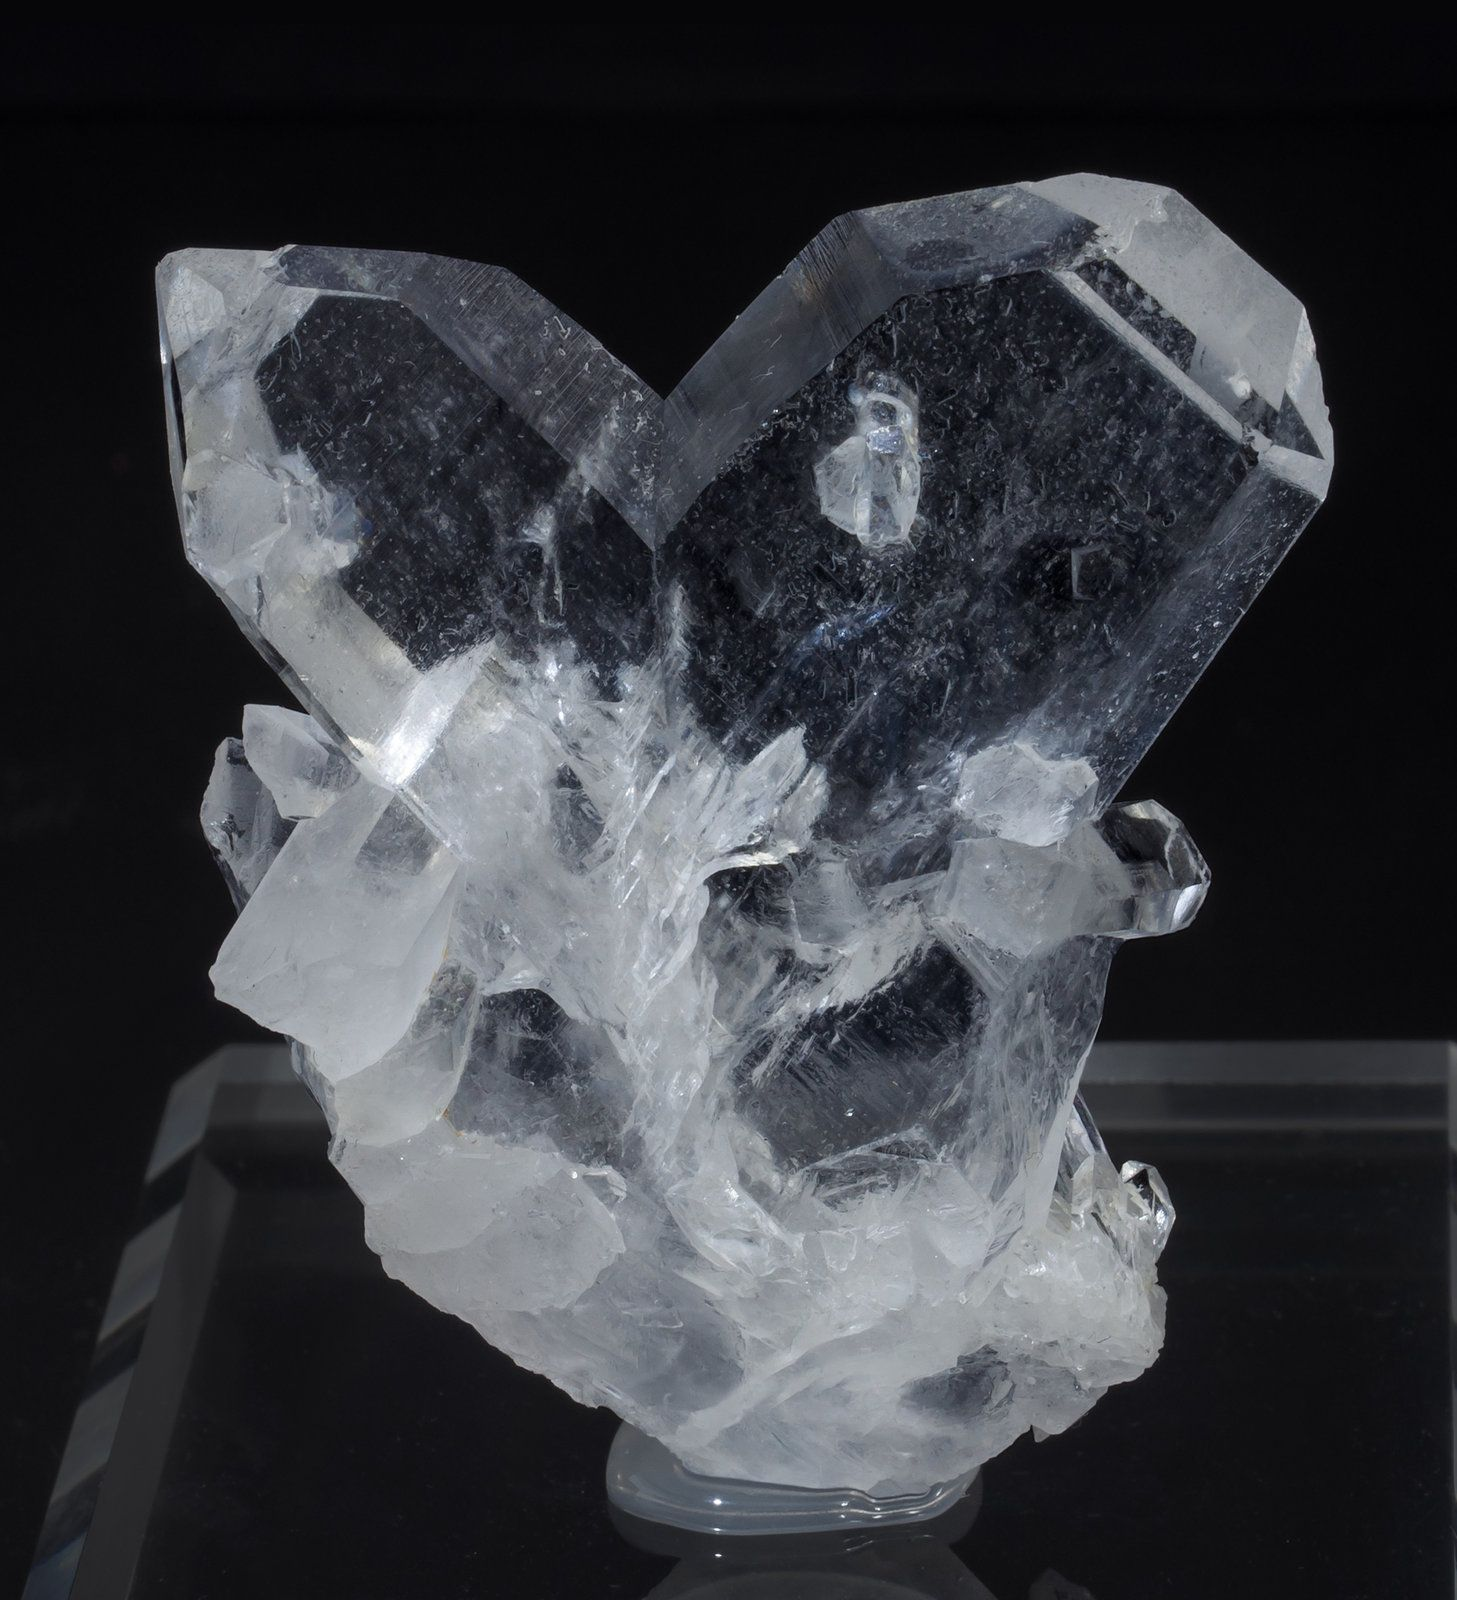 specimens/s_imagesAB2/Quartz-TF69AB2f.jpg